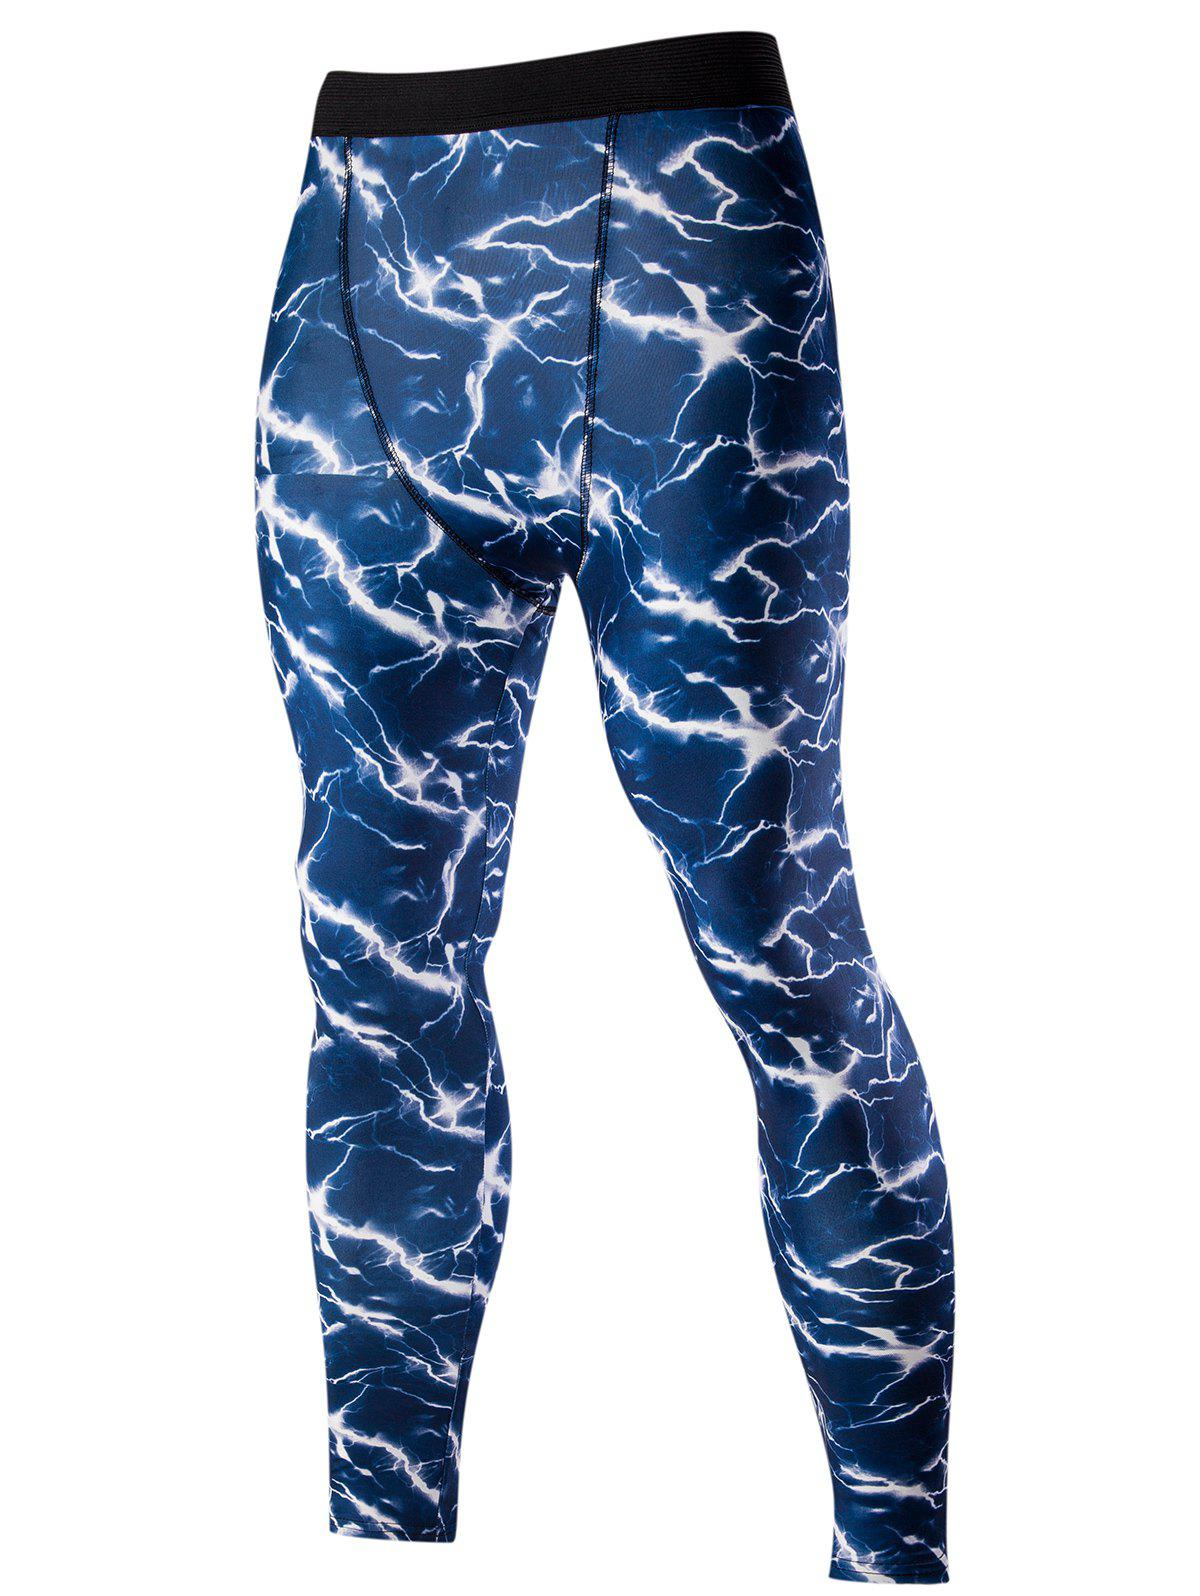 Mens Stylish Elastic Waist Abstract Print Training PantsMen<br><br><br>Size: L<br>Color: BLUE